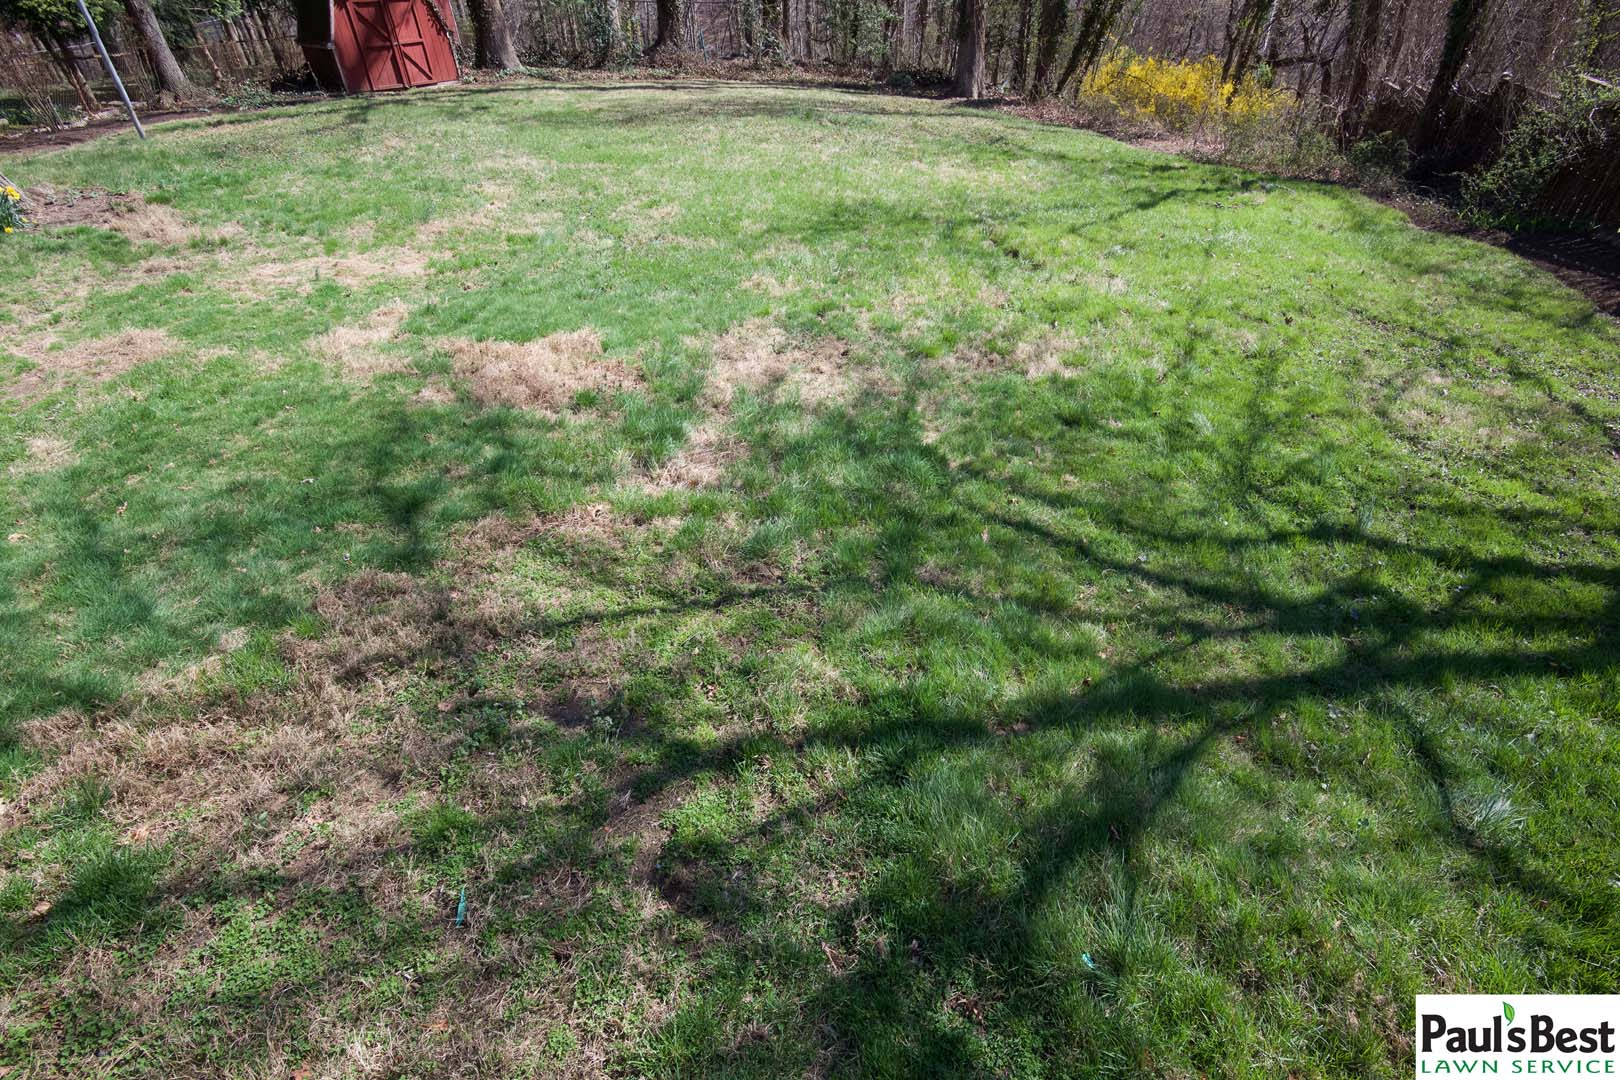 https://paulsbestlawn.com/pbls-img/portfolio/lawn-mowing-lawn-fertilization-and-treatment/before-and-after/web-ready/large/BALM1-b-After-2-Years-Turf-Care-and-Lawn-Maintenance-Arlington-VA.jpg